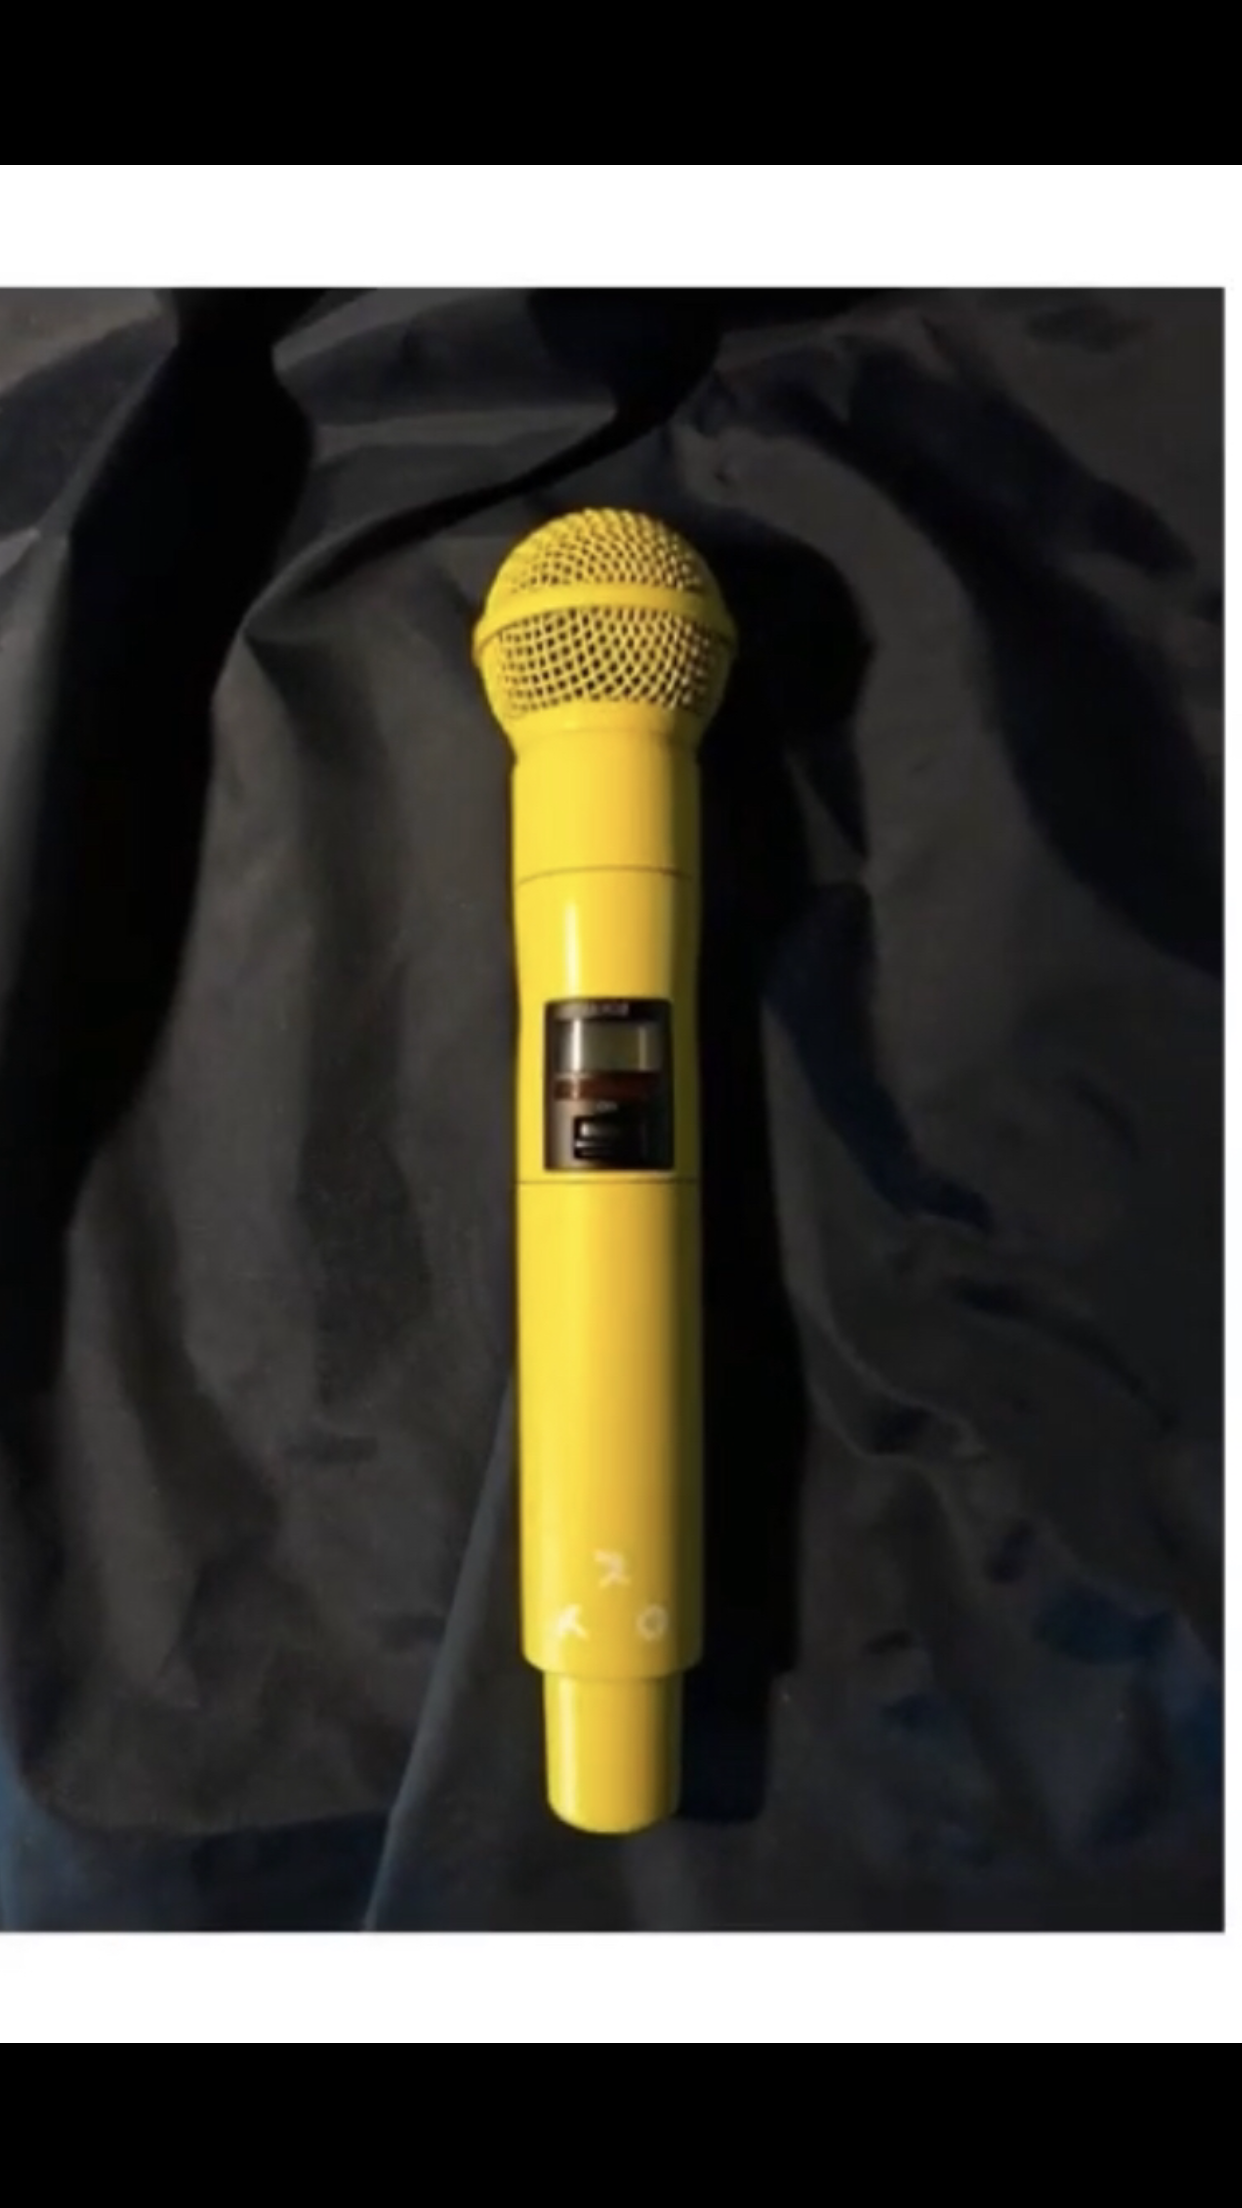 Pin by BREDDI on Mic in 2020 | Microphones, Music